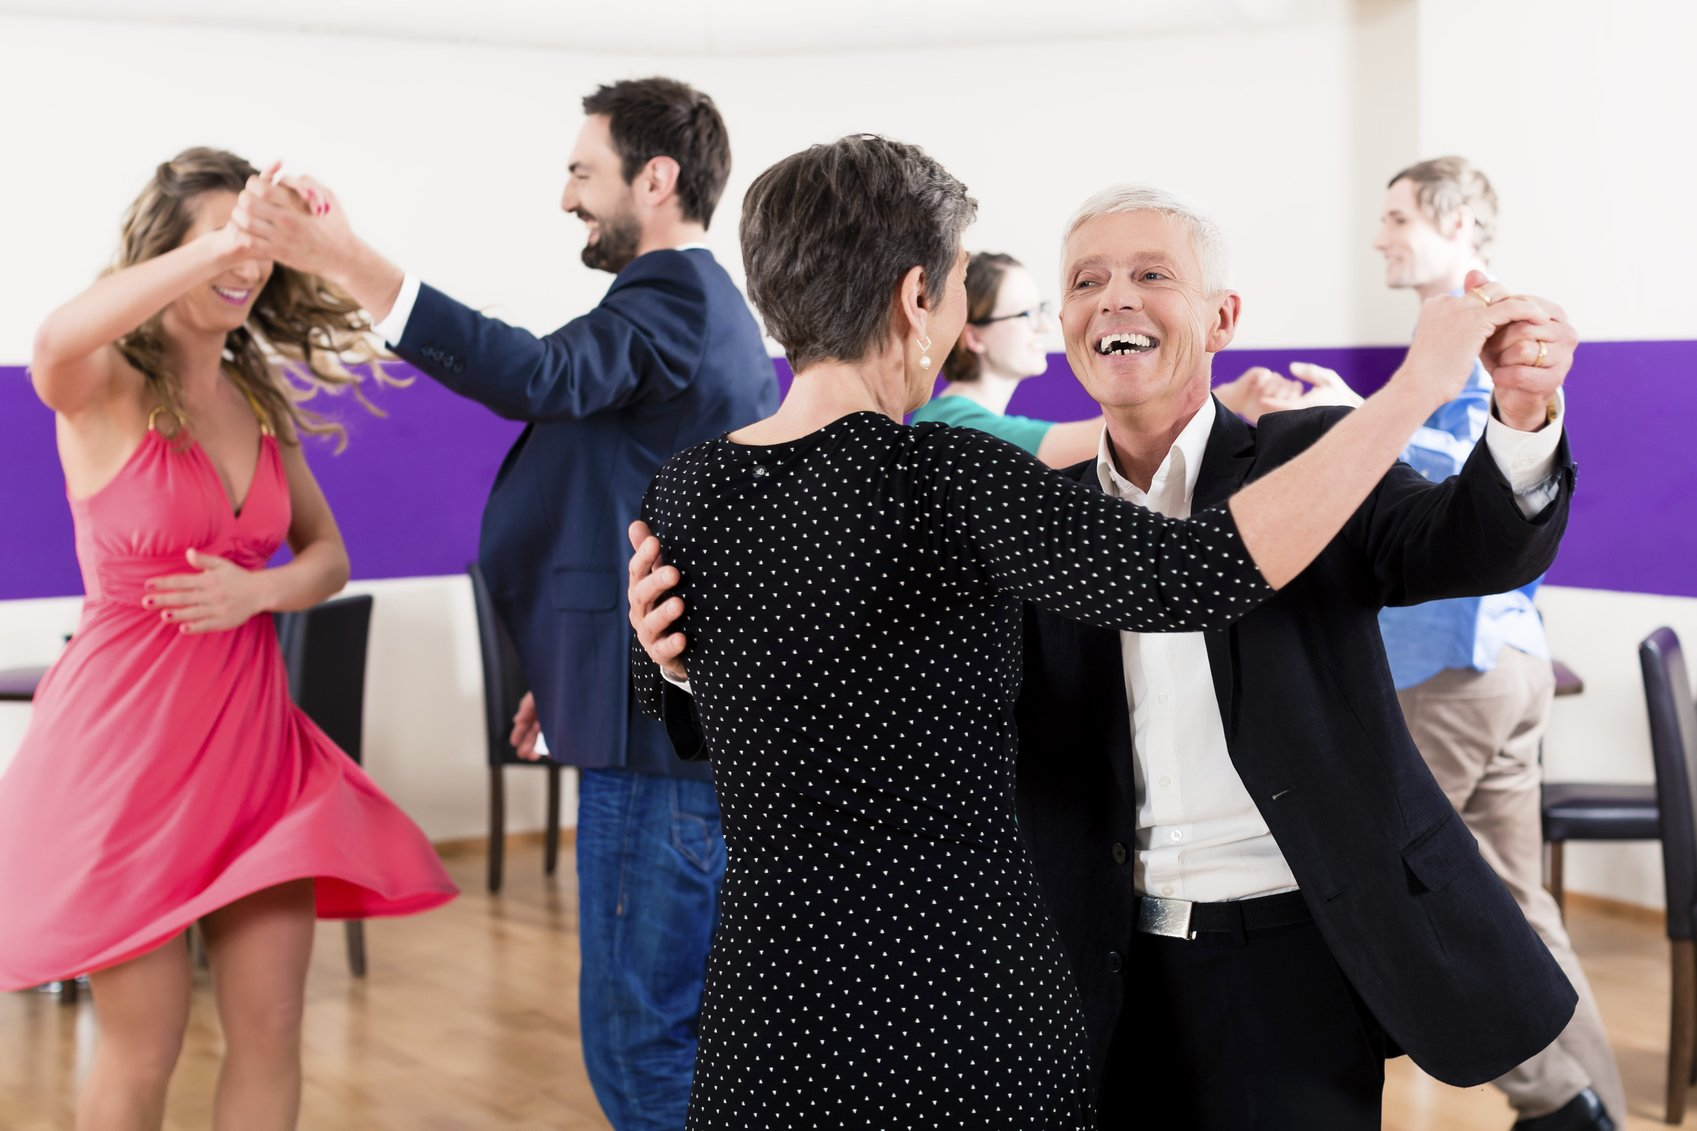 Couples dance lessons can be a great way to bond with your partner and adopt a fun new hobby.